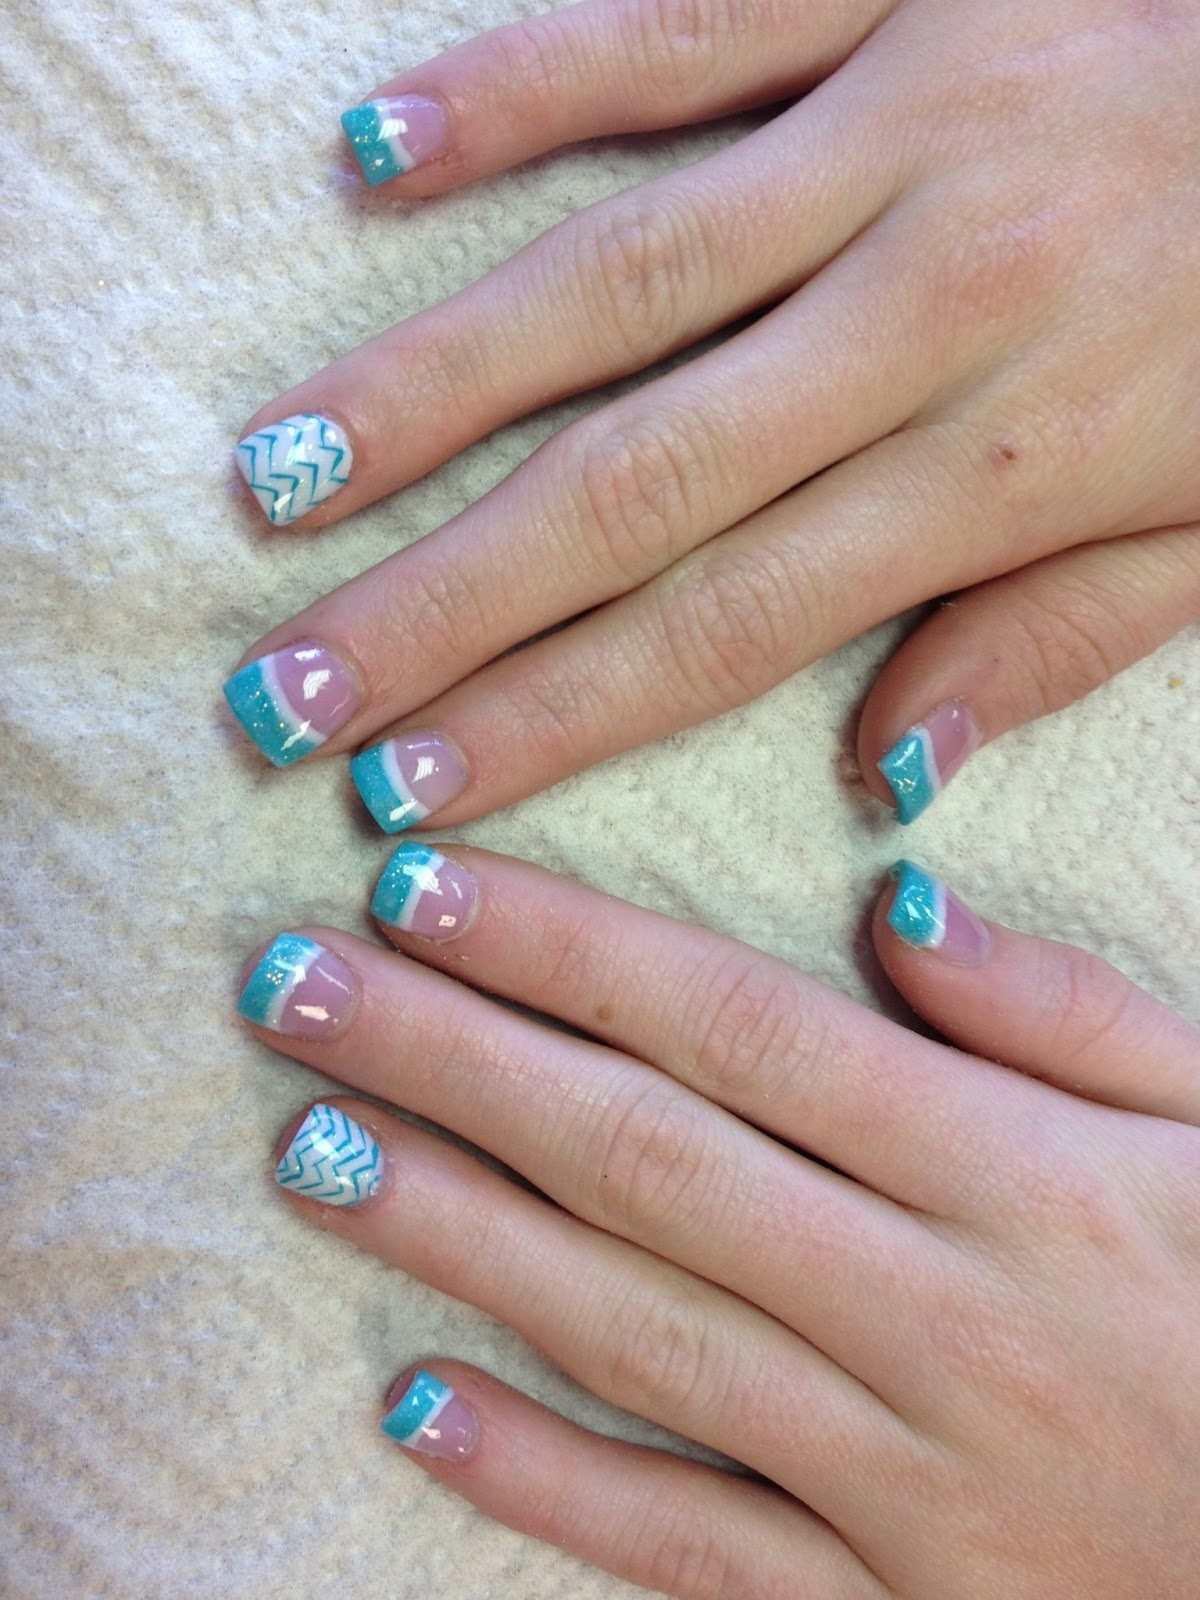 Passion For Fashion! : Spring Break Nails